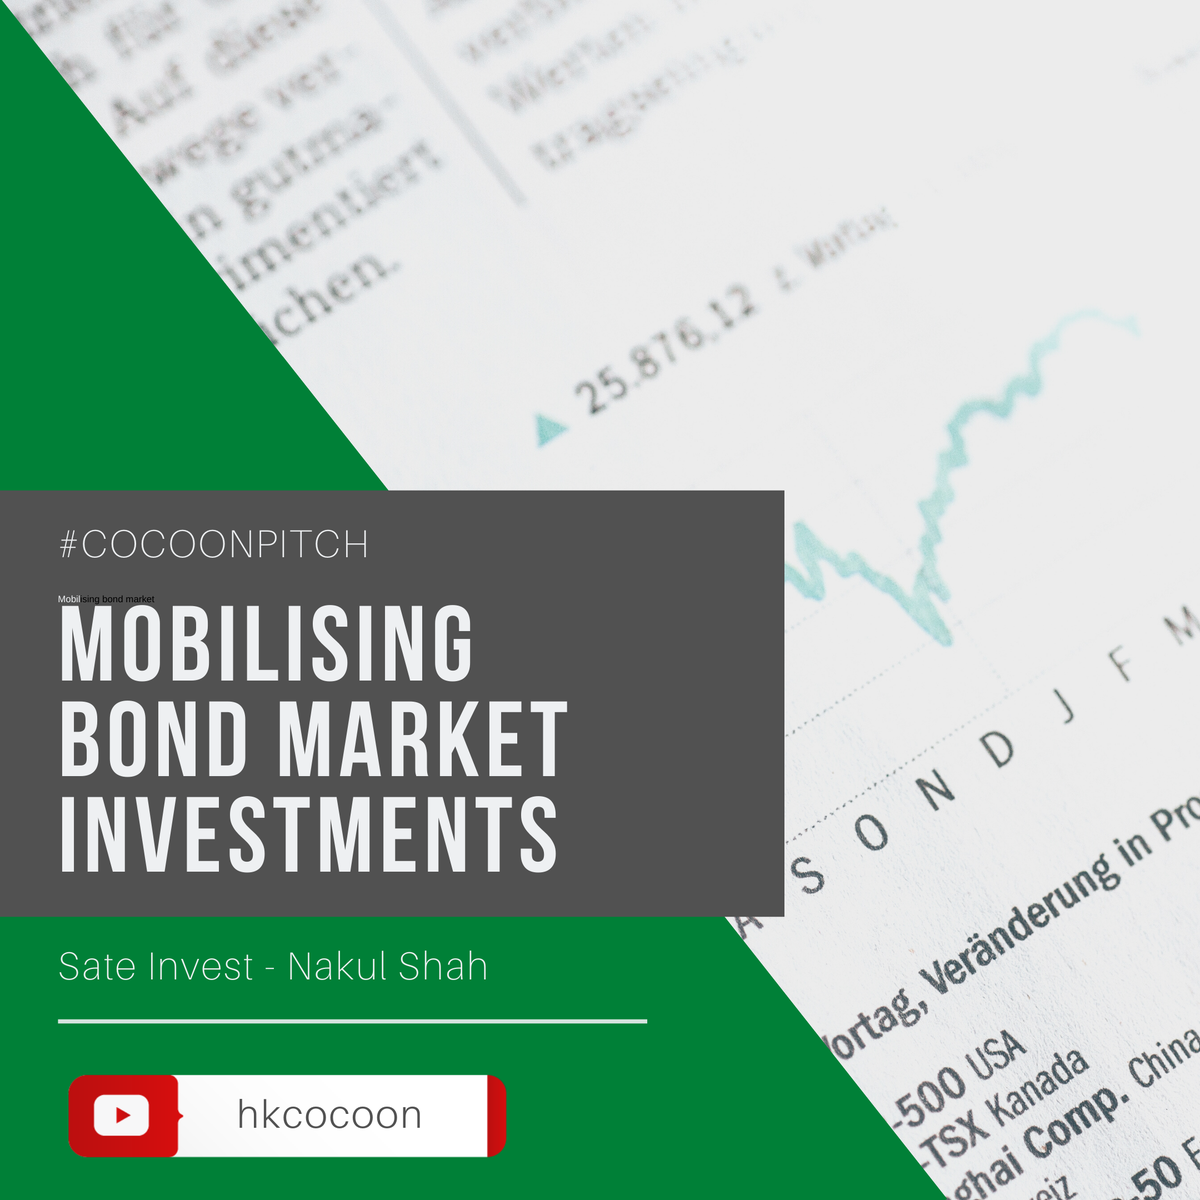 Sate Invest is a mobile first platform with a range of bond investment options like corporate bonds, sovereign bonds, tax-free bonds, and more!  Learn more about Sate Invest on our YouTube channel.  Watch Now: https://t.co/qPrHpn2acy    #hkcocoon #investments #pitching #youtube https://t.co/PK2UXz4wRJ